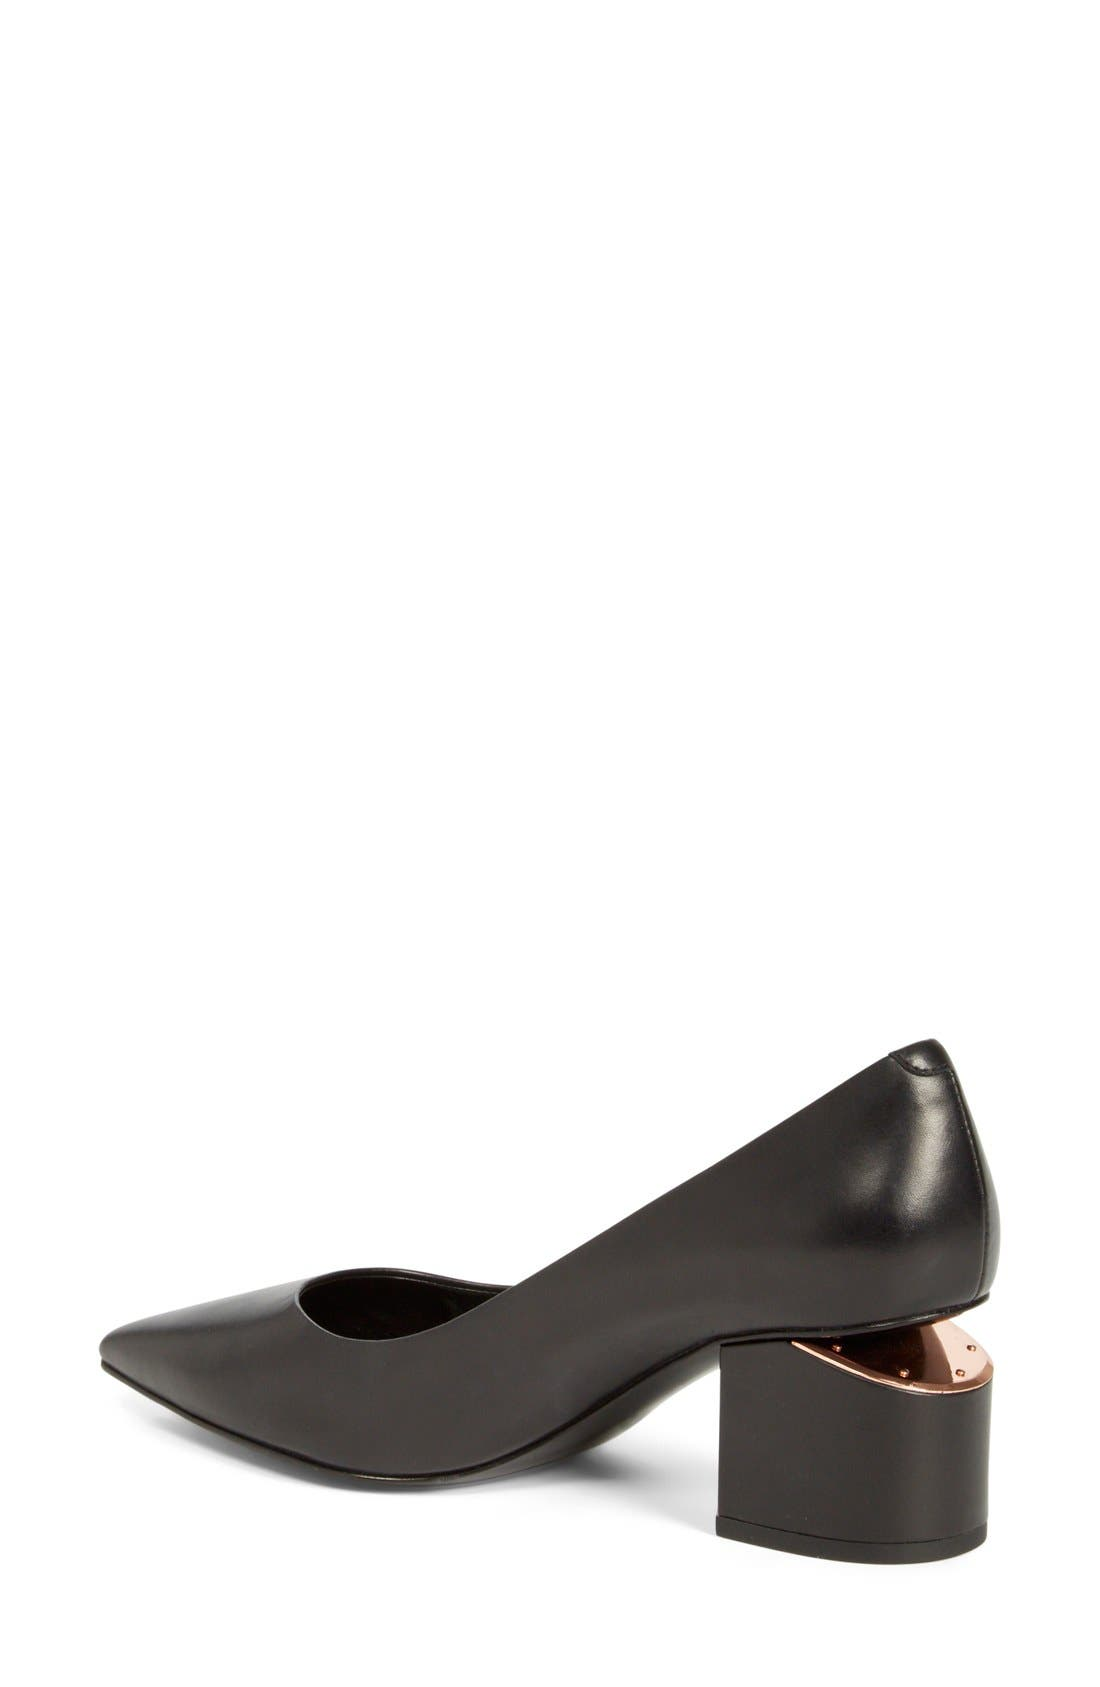 Alternate Image 2  - Alexander Wang 'Simona' Block Heel Pump (Women)